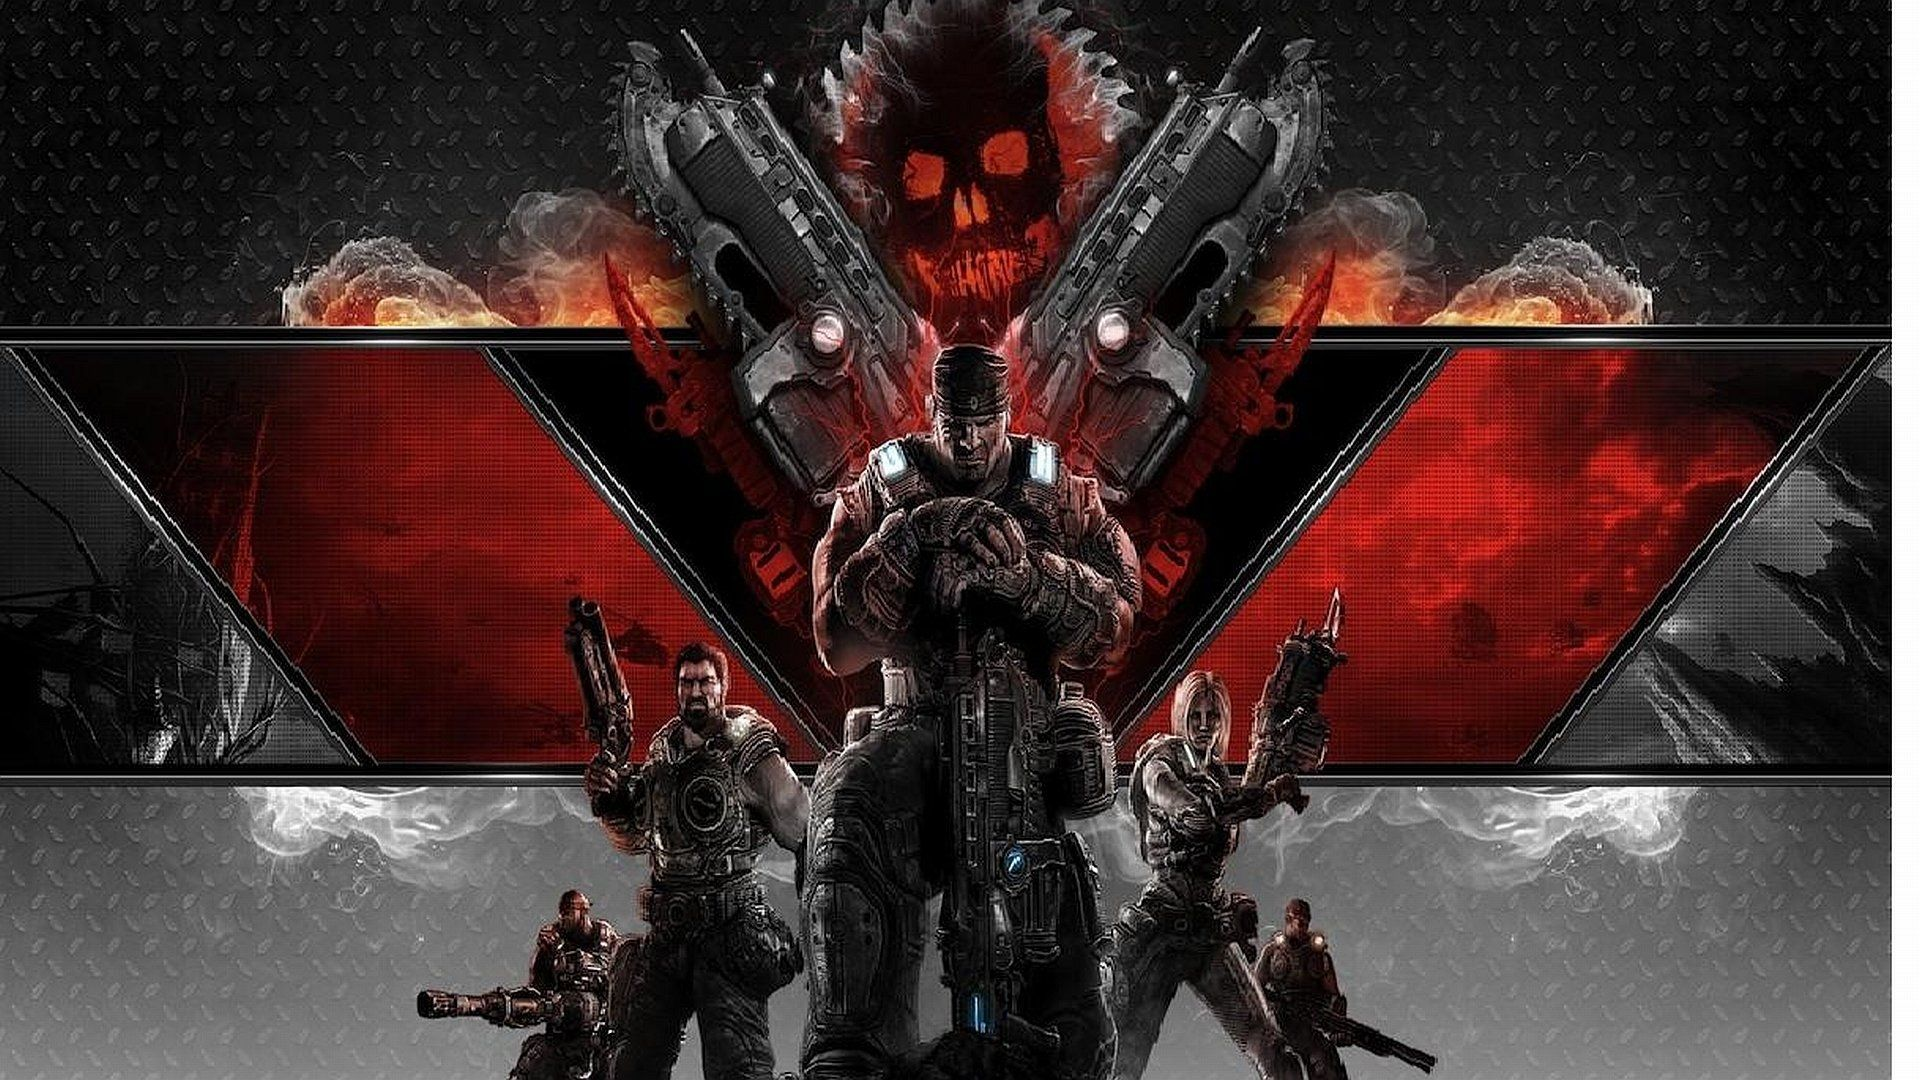 Gears Of War 3 Wallpapers Top Free Gears Of War 3